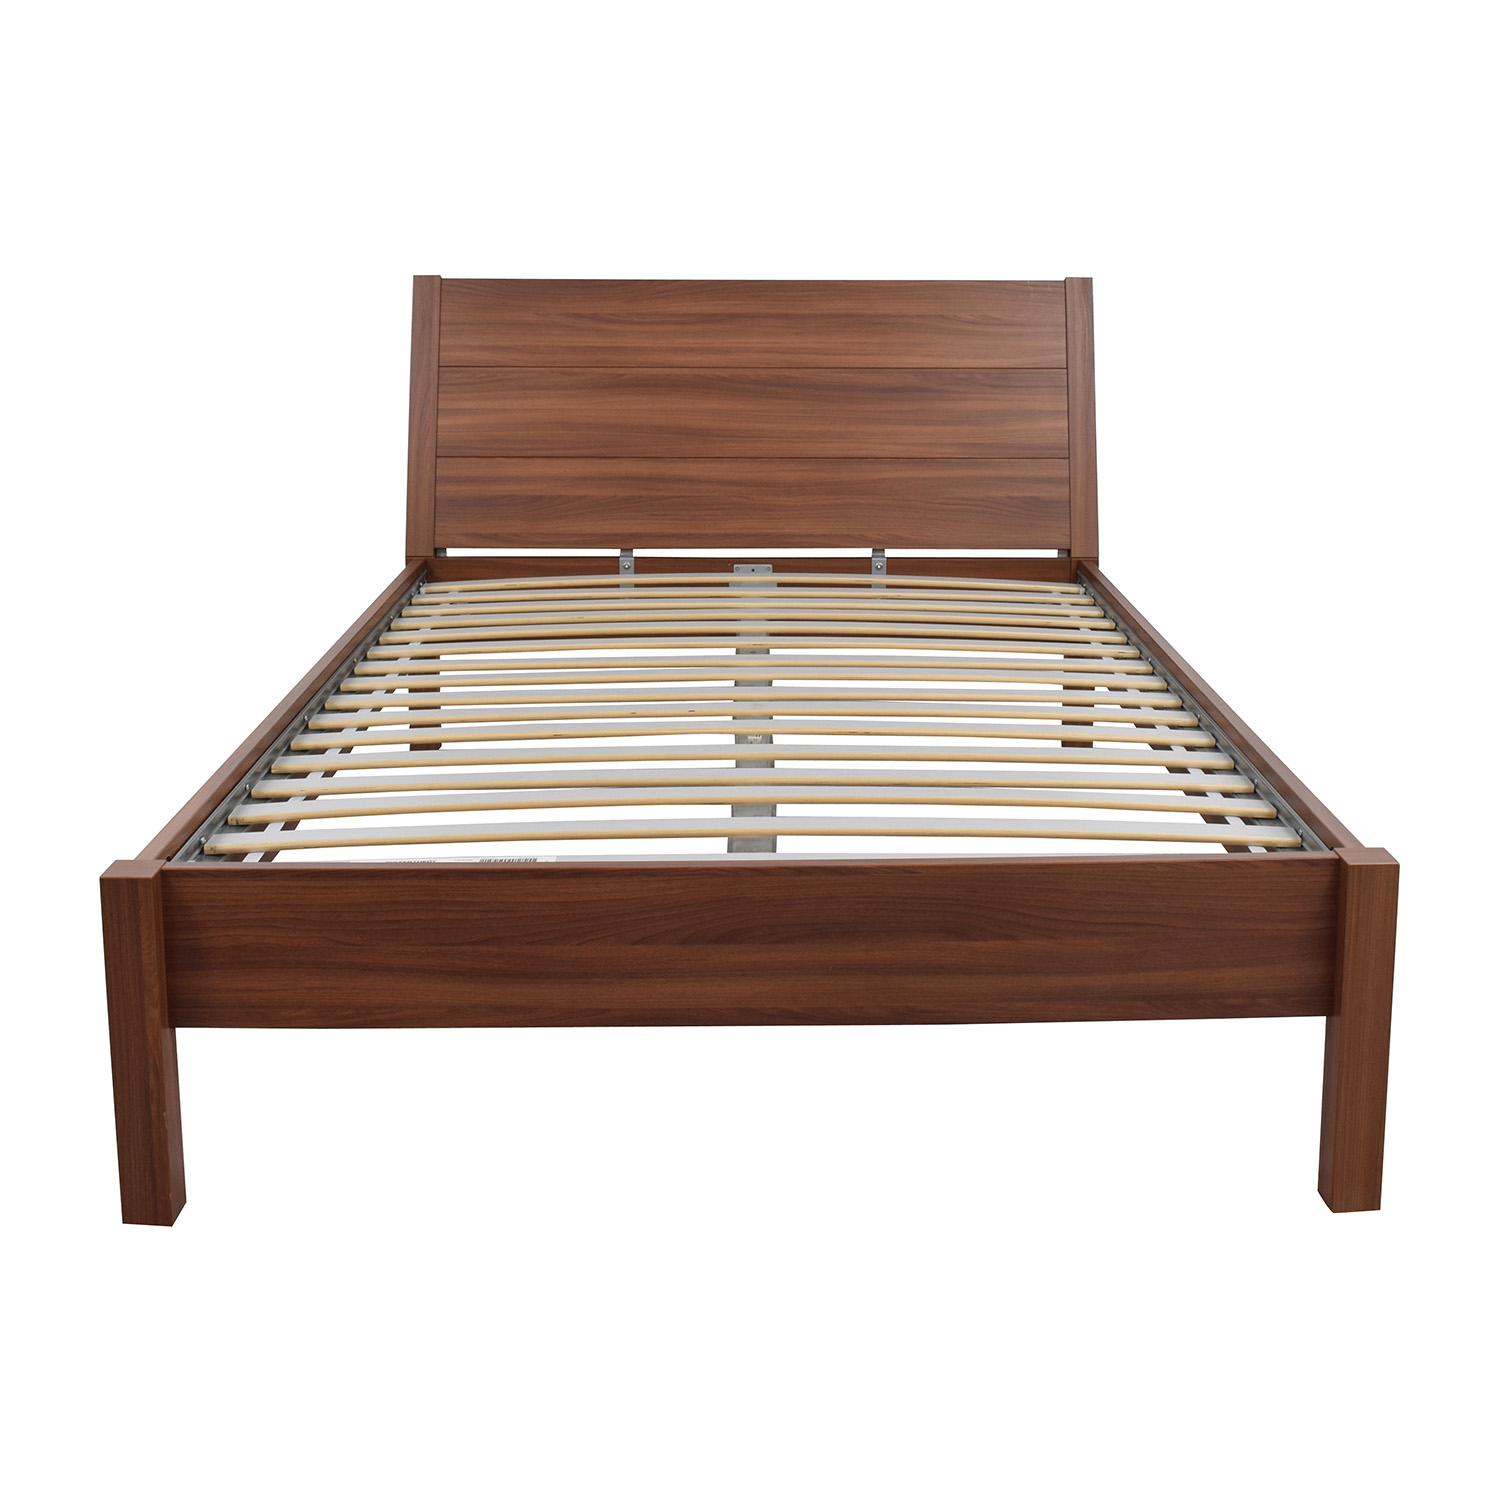 Charmant Buy IKEA IKEA Queen Wooden Platform Bed Frame Online ...